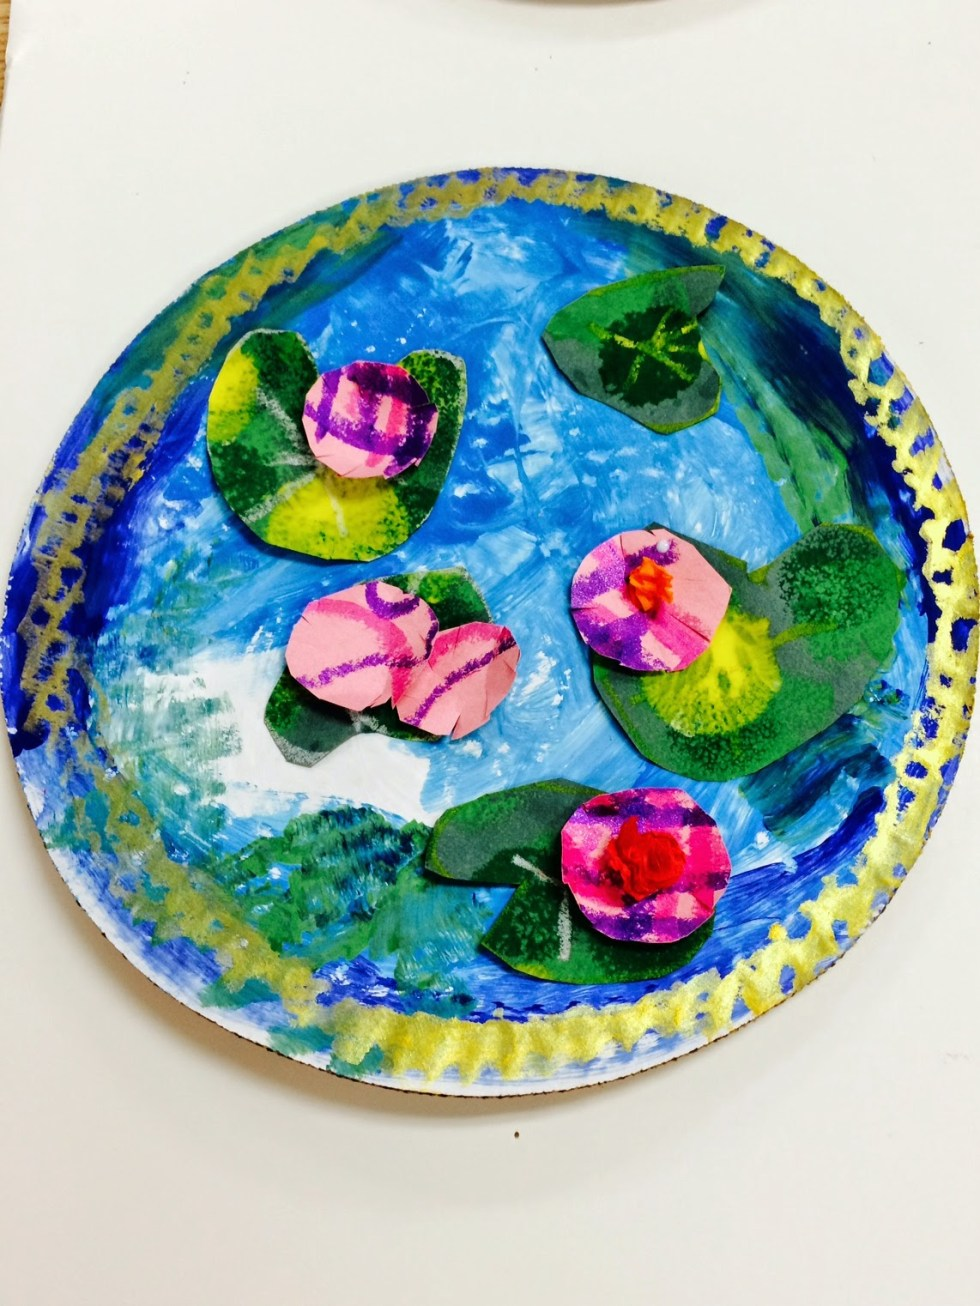 Monet inspired sensory projects for kids with autism. | speciallearninghouse.com